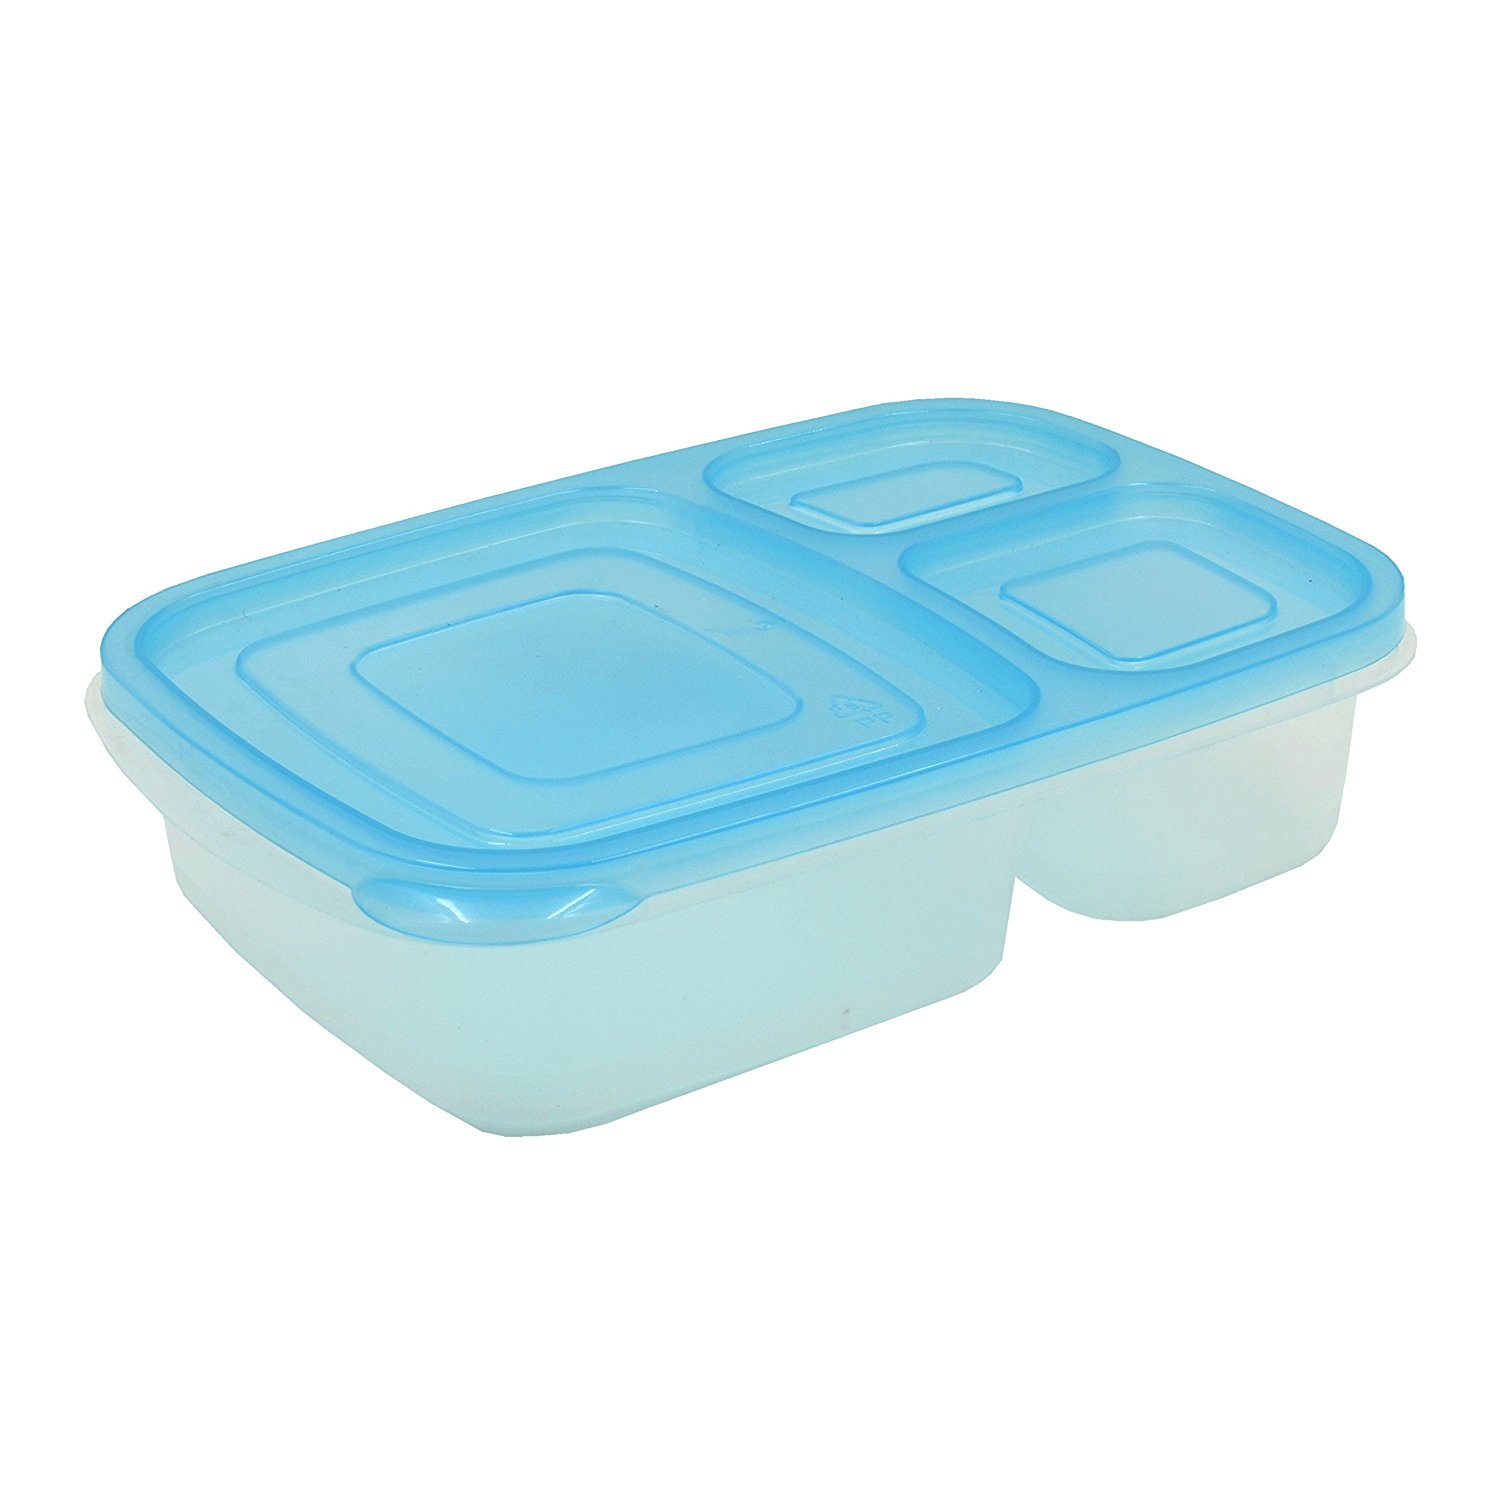 bento lunch box containers set of 3. Black Bedroom Furniture Sets. Home Design Ideas